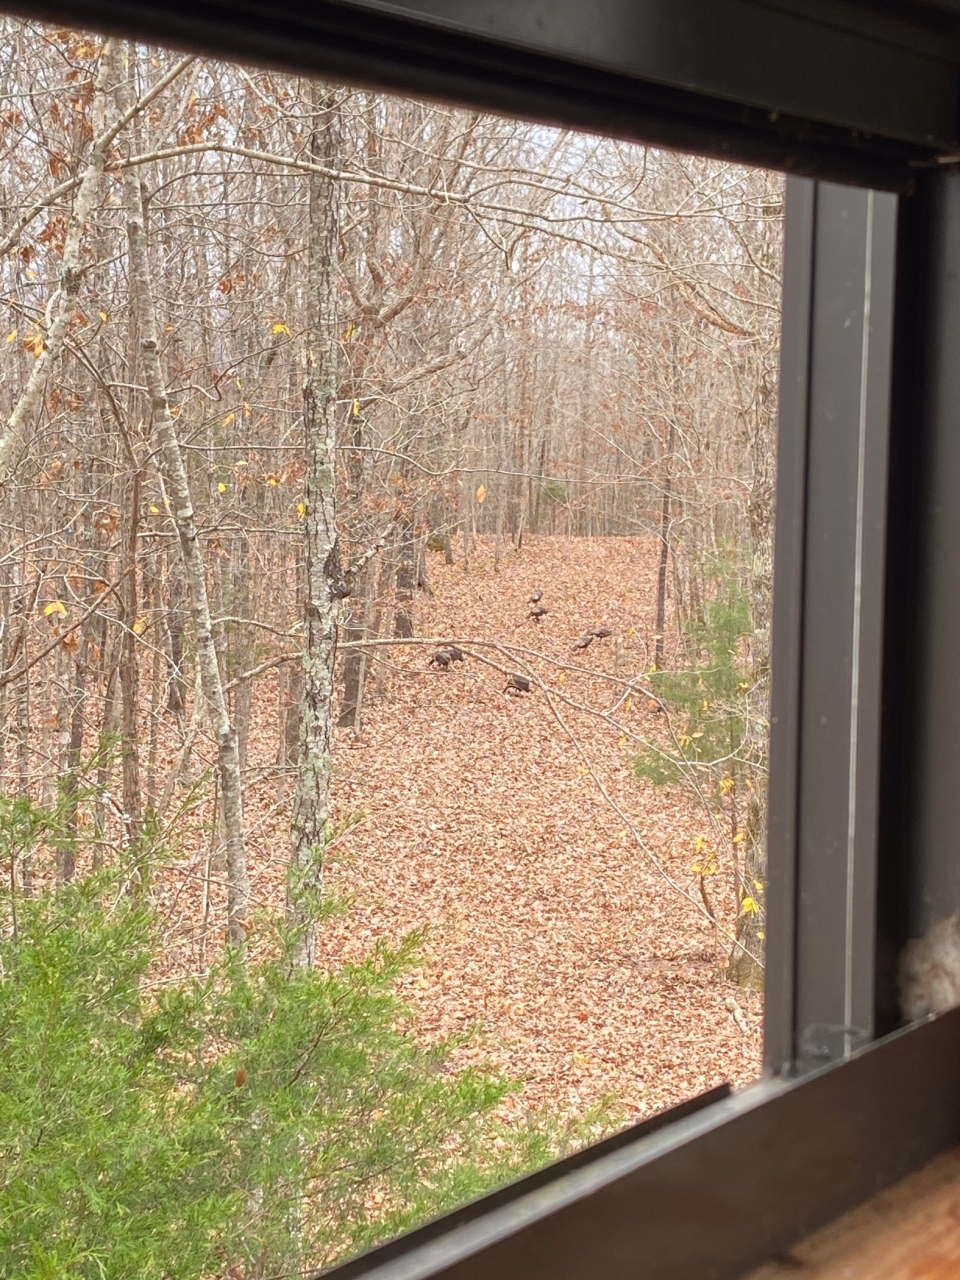 We had lots of turkeys visit us during deer season... hopefully they'll visit again in the spring! Who is ready for turkey season?